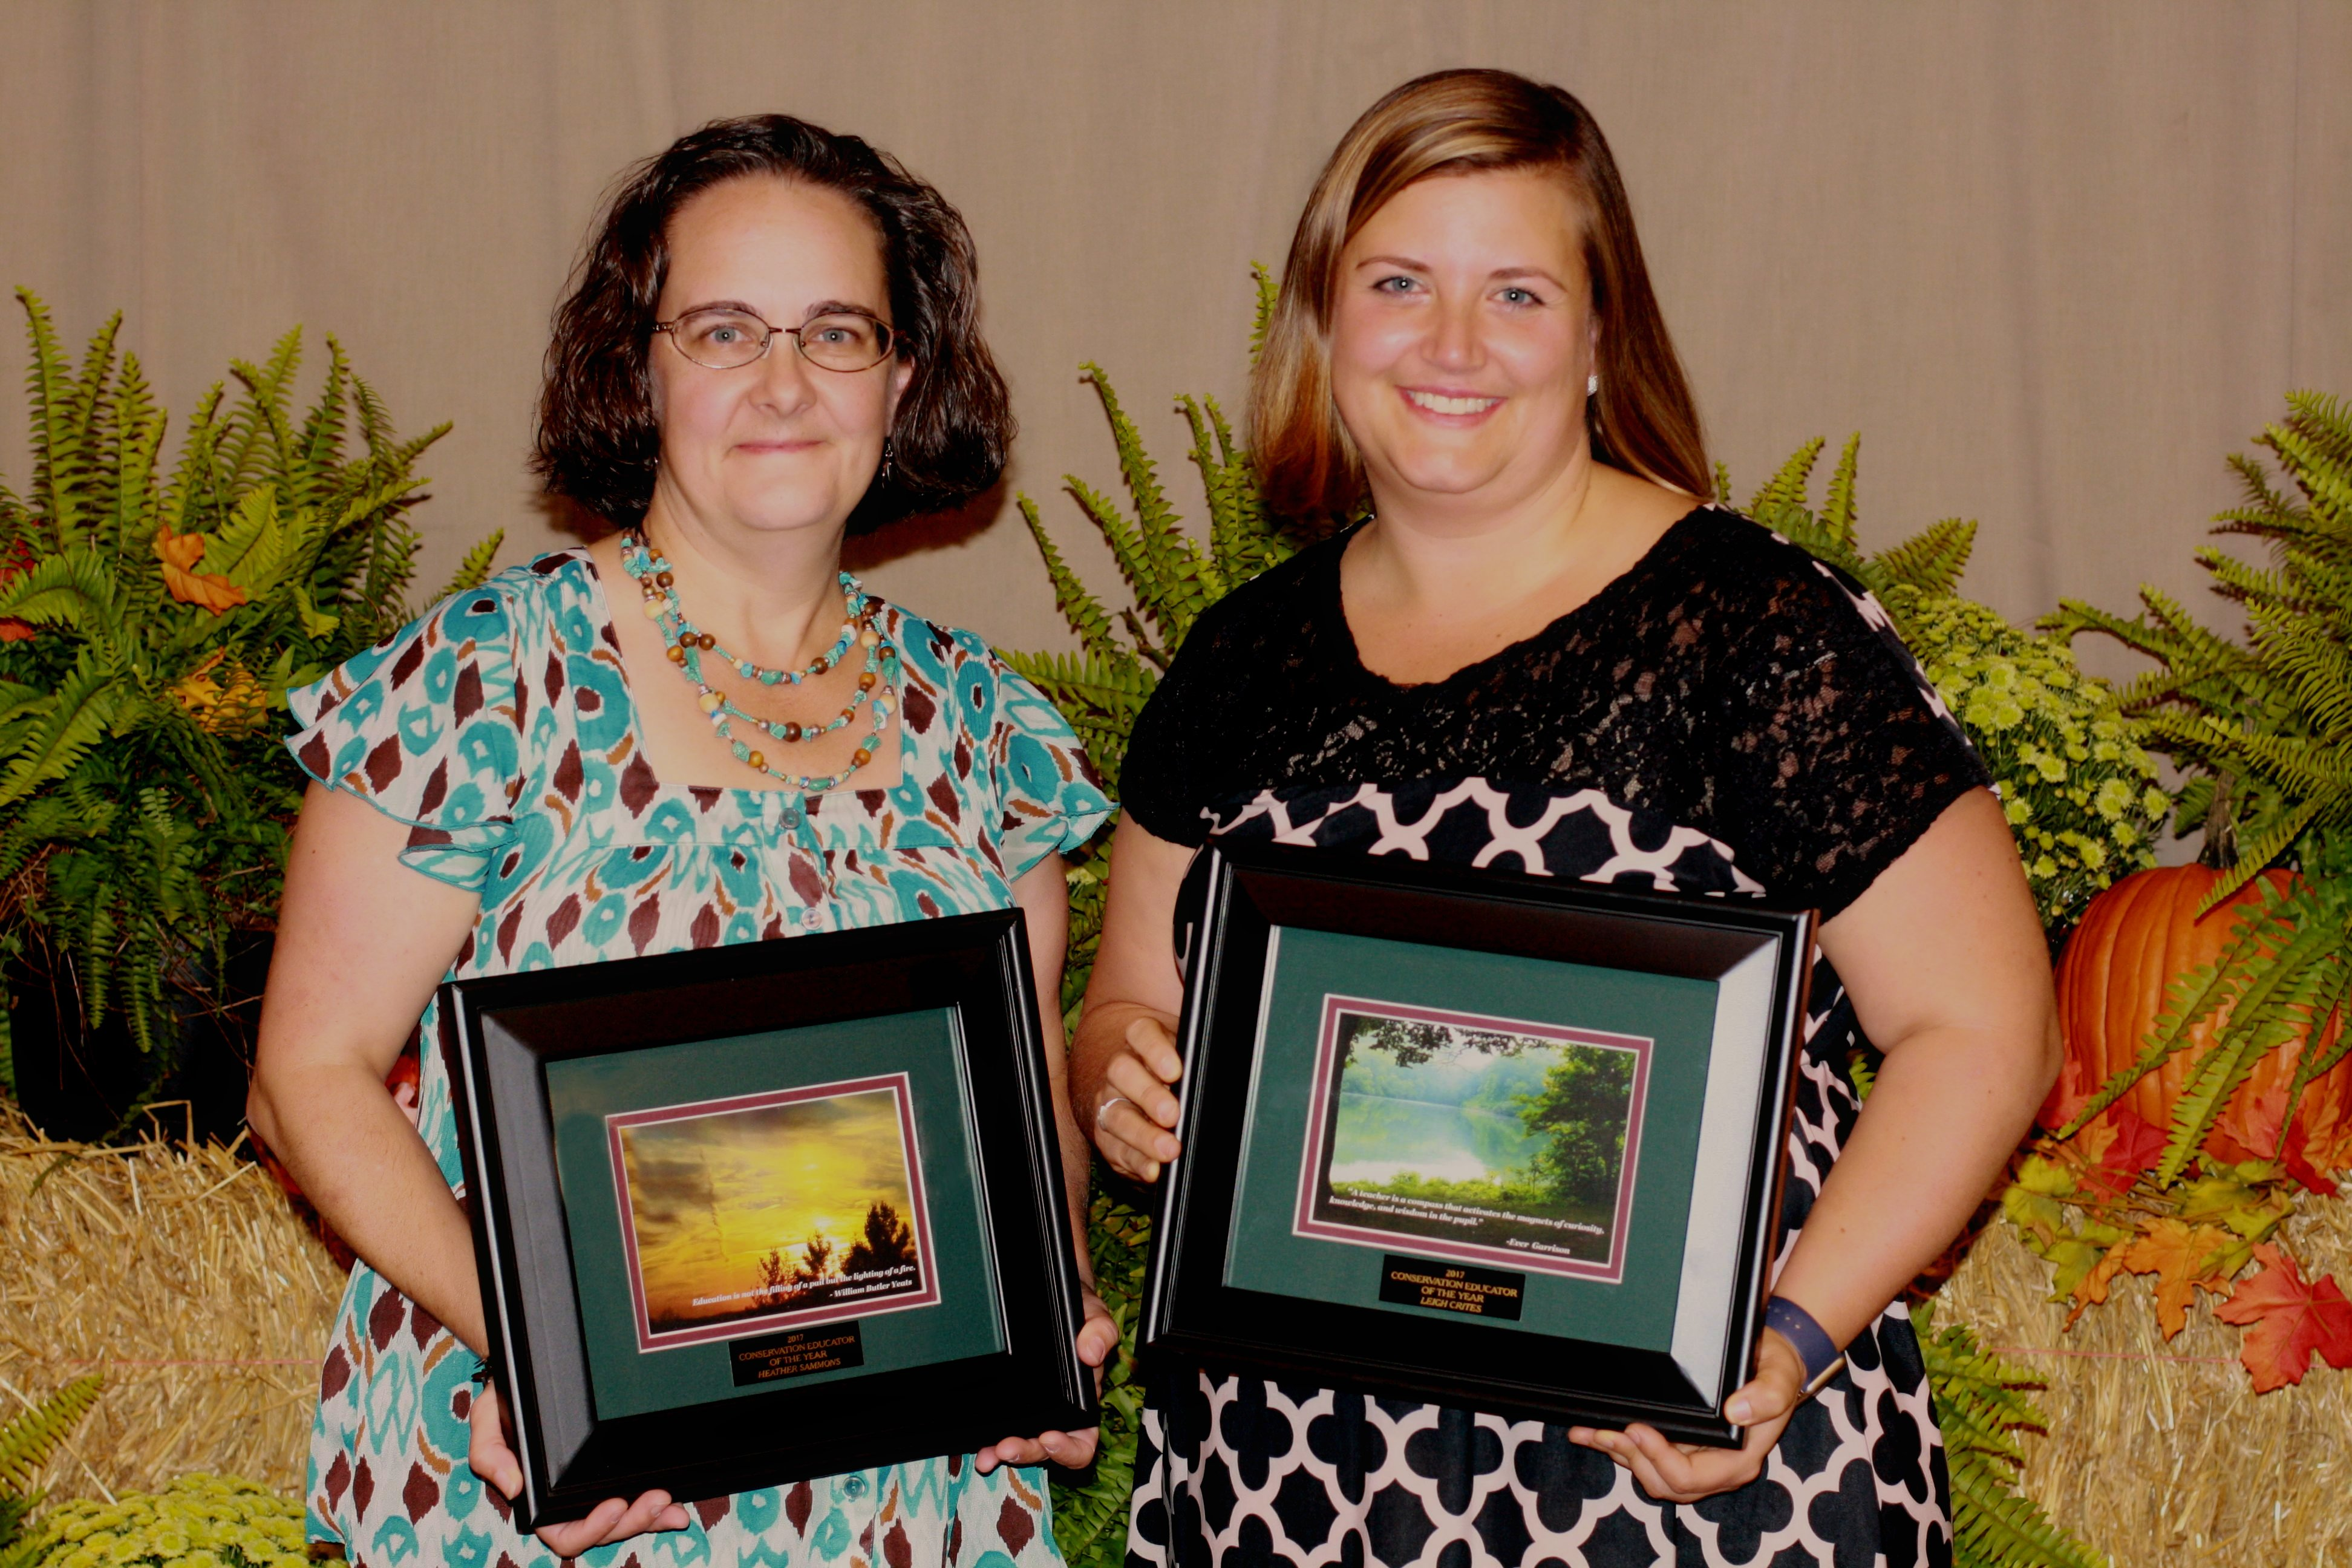 Athens SWCD Conservation Educators of the Year